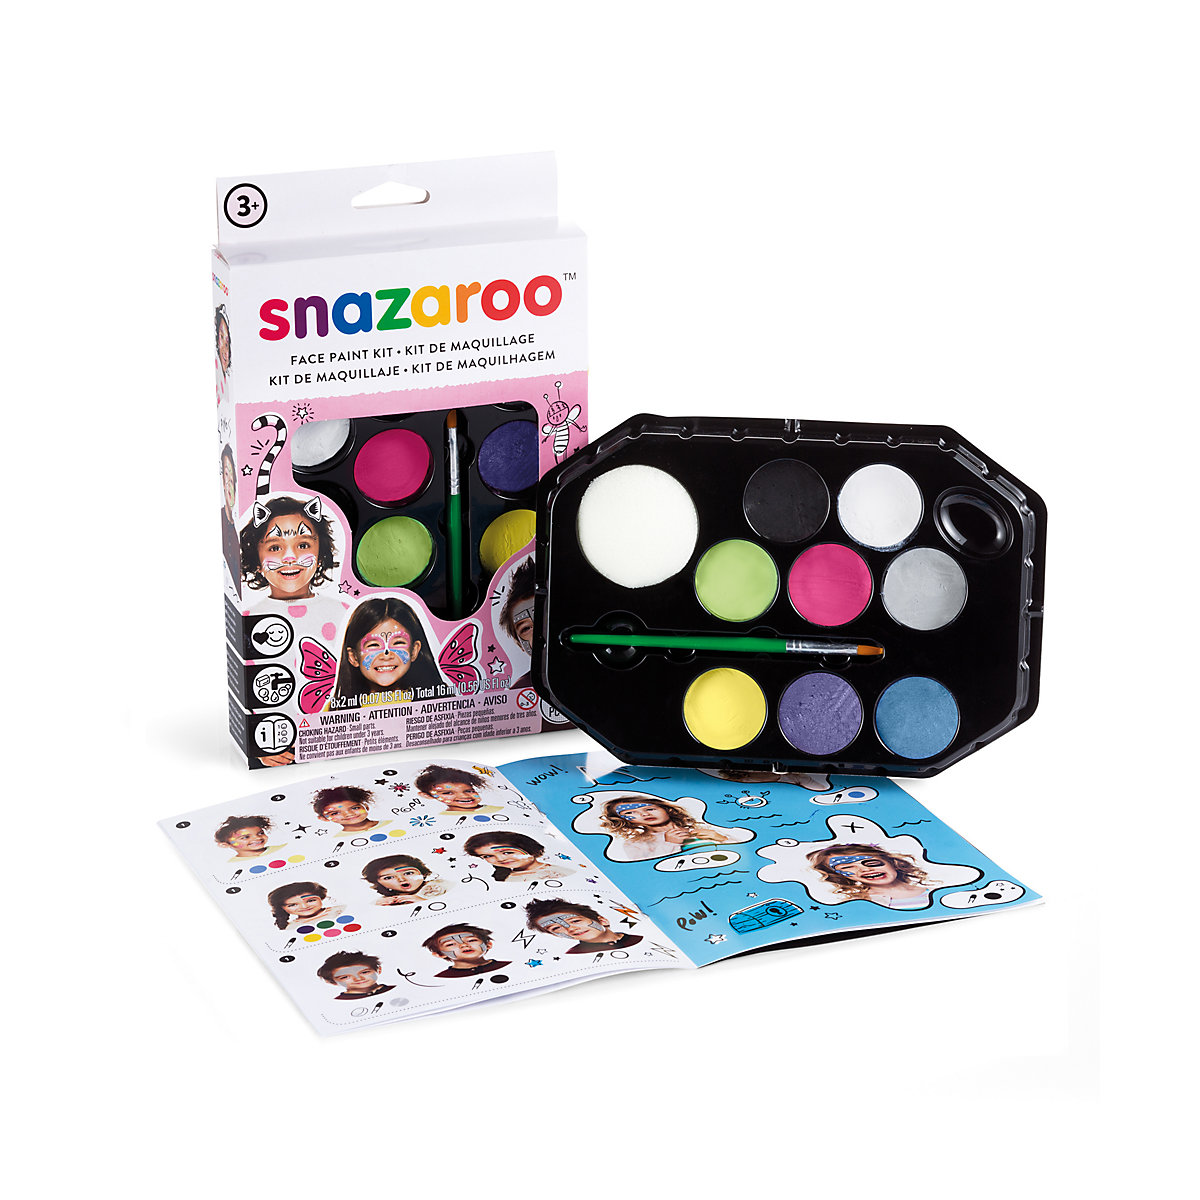 Snazaroo Pastel Face Painting Kit Toy From 3 years